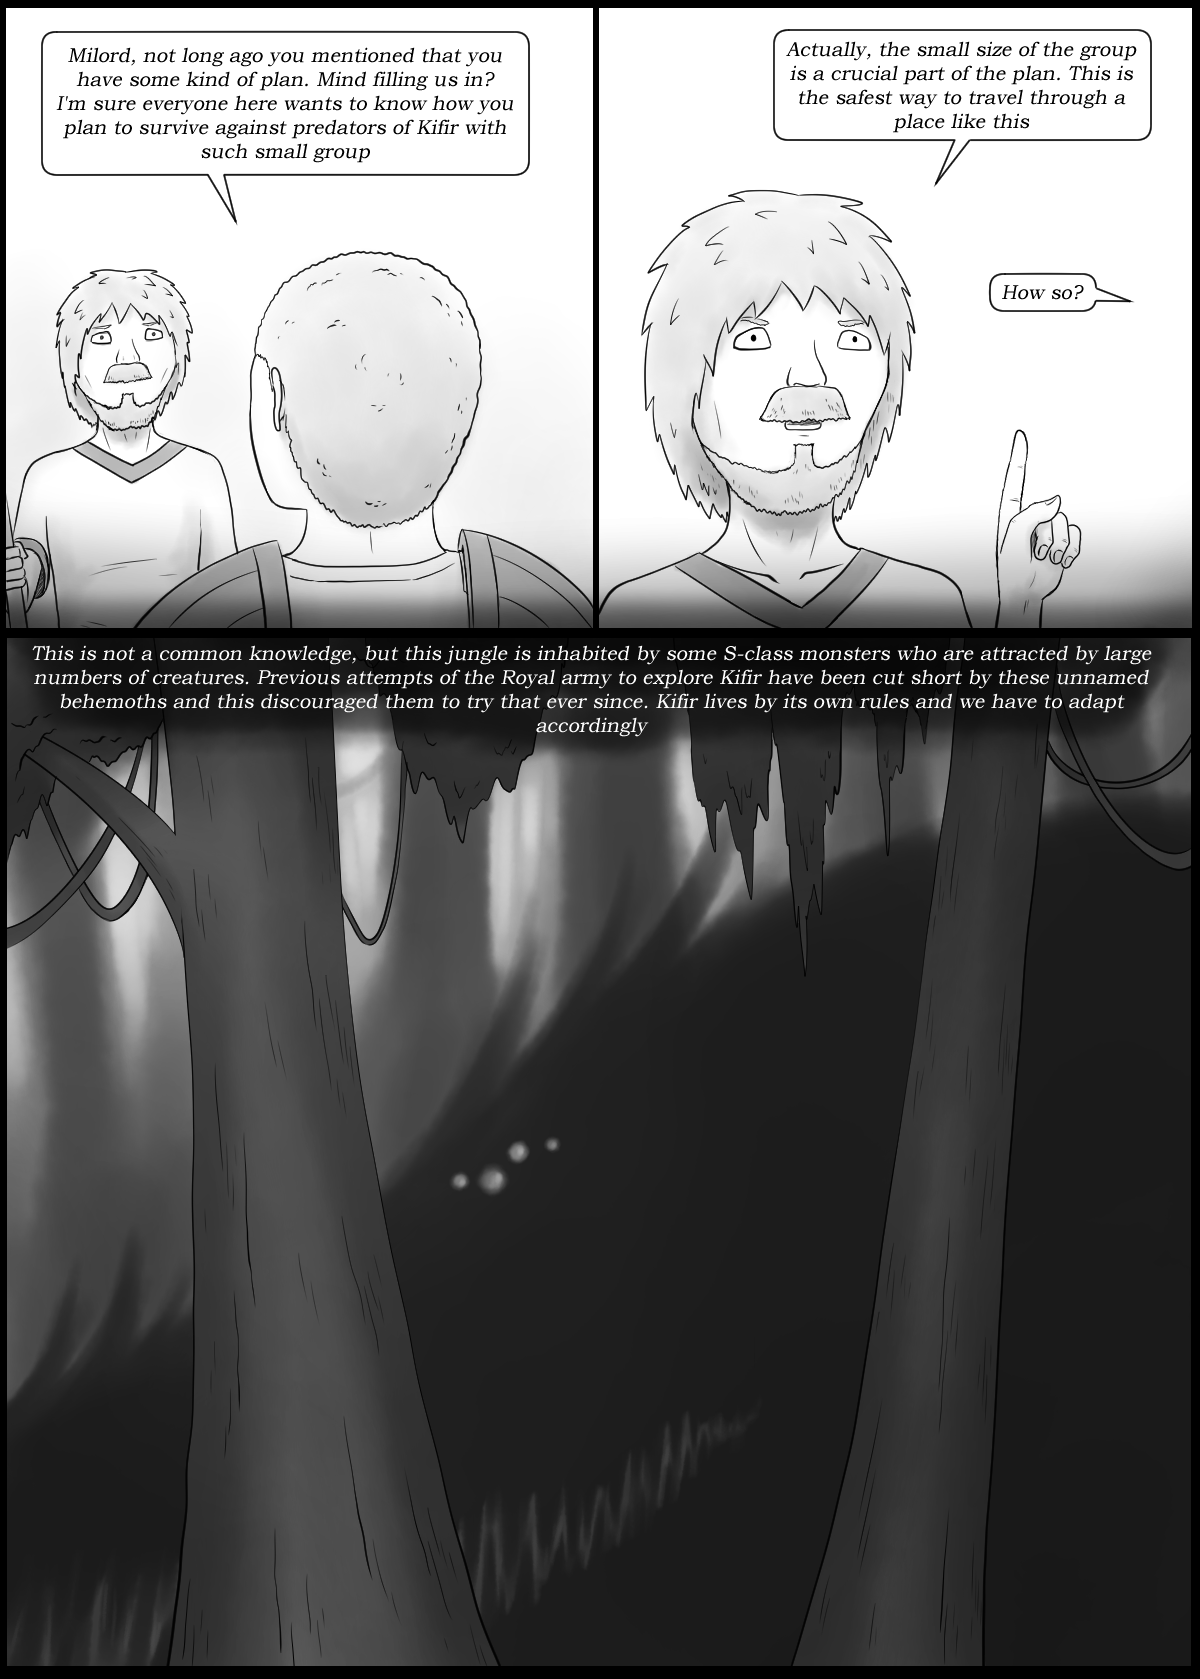 Page 105 - The reason to keep it low